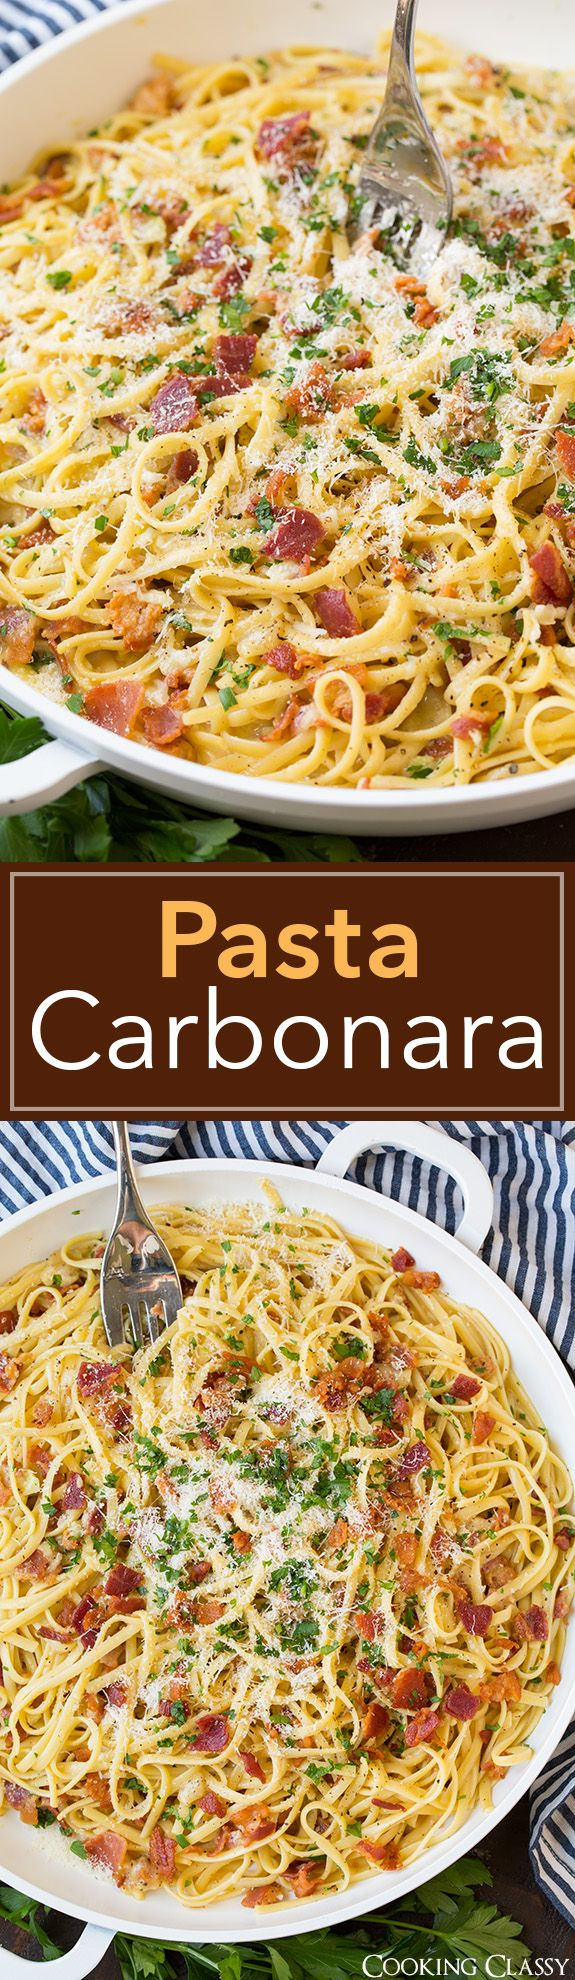 b410ccde1d2 Pasta Carbonara - this is the BEST Pasta Carbonara! Ill have to take out  the bacon but sounds good !